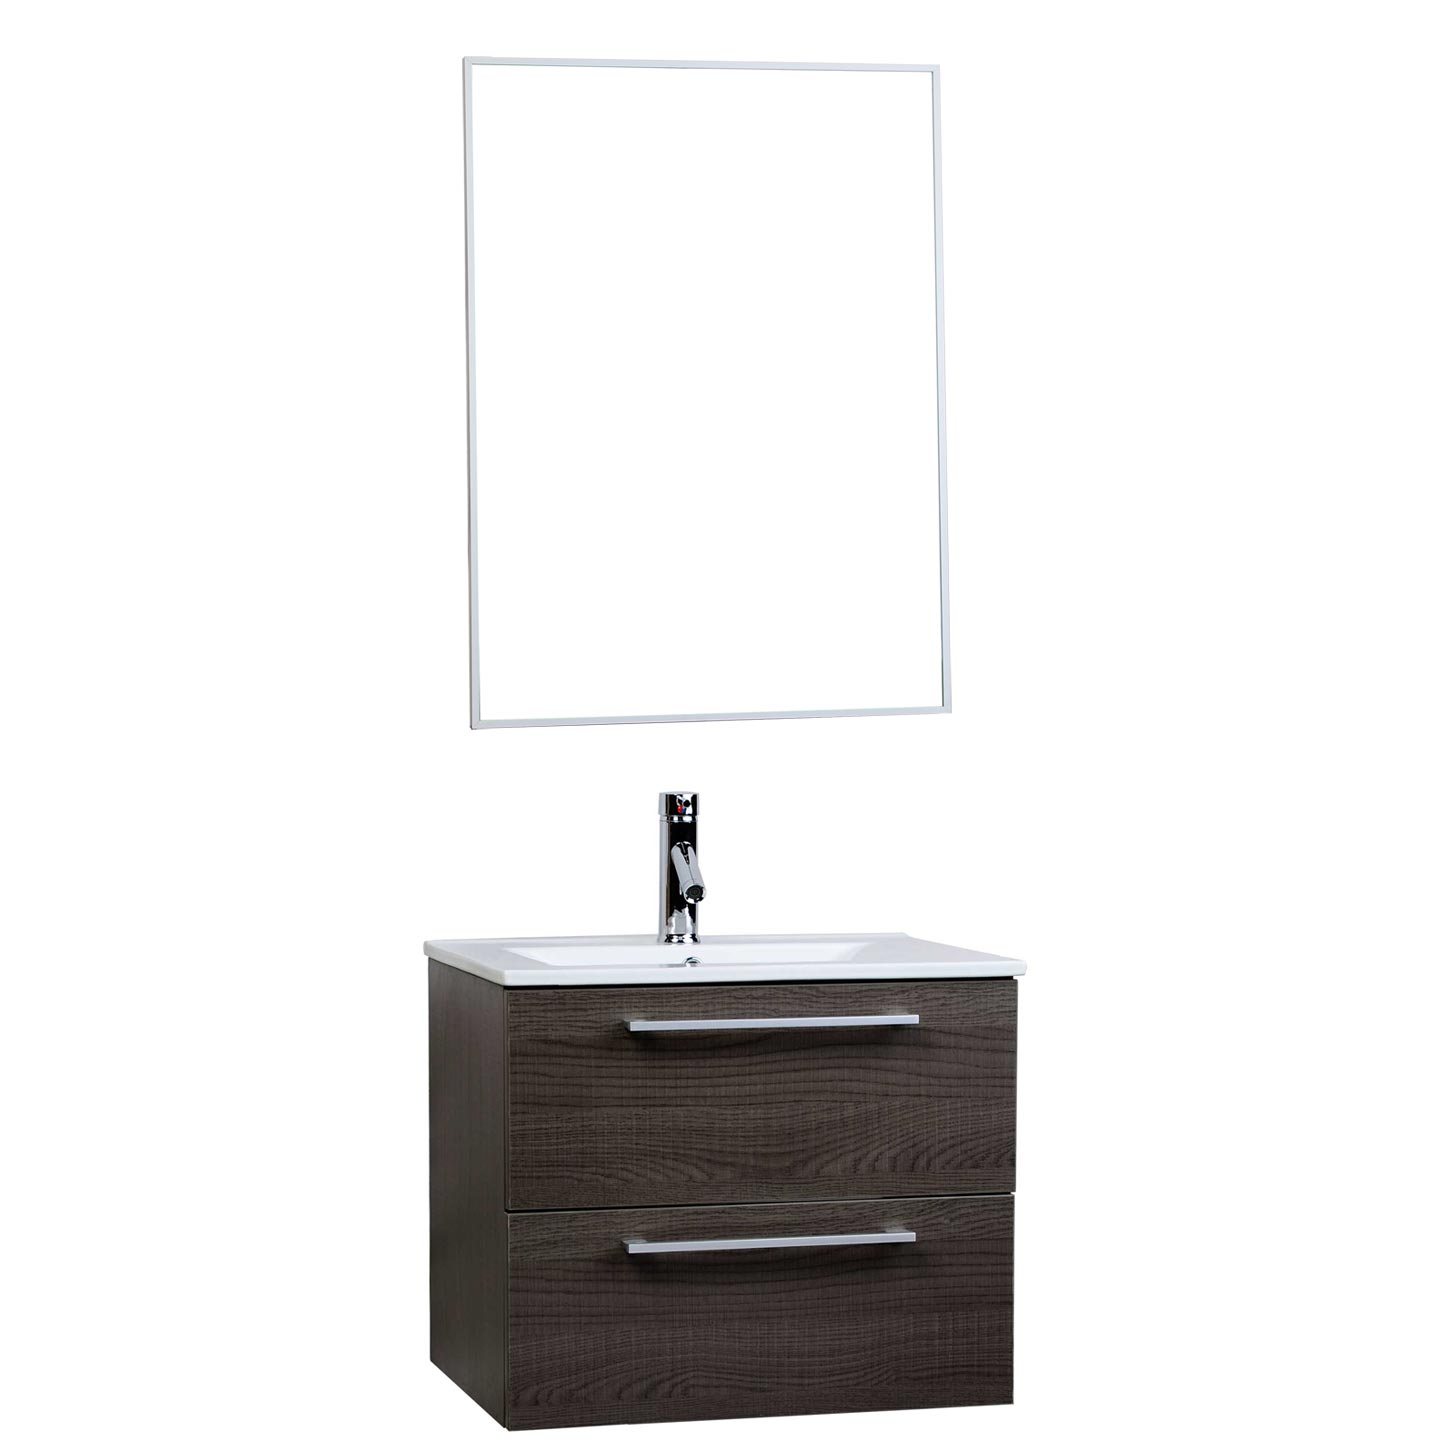 "European Styled Caen 23.5"" Single Bathroom Vanity Set in Oak RS-DM600 ..."